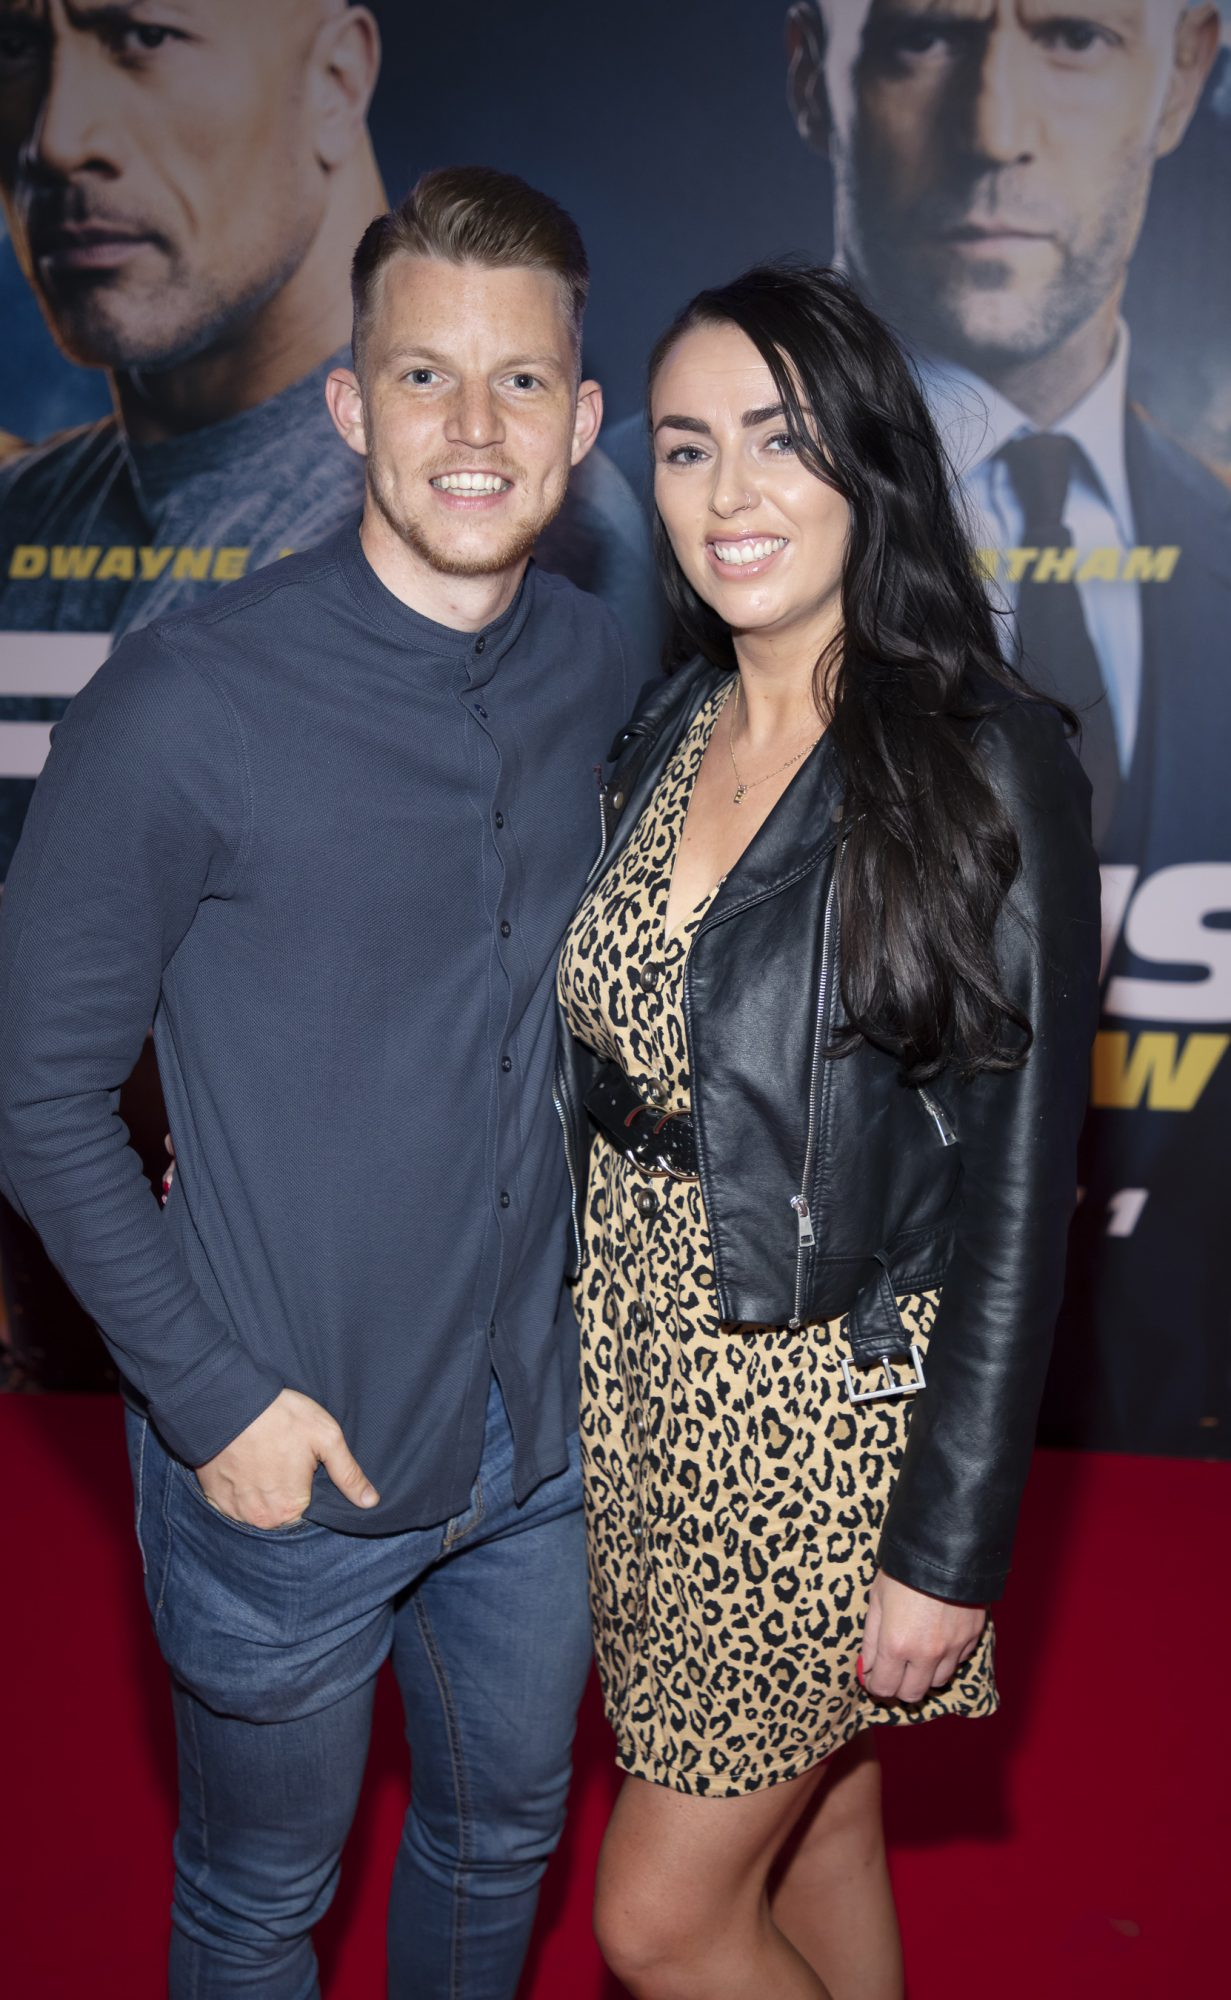 Ian Byrne & Ellie Sutton pictured at a special preview screening of Fast & Furious Presents: Hobbs & Shaw. Photo: Anthony Woods